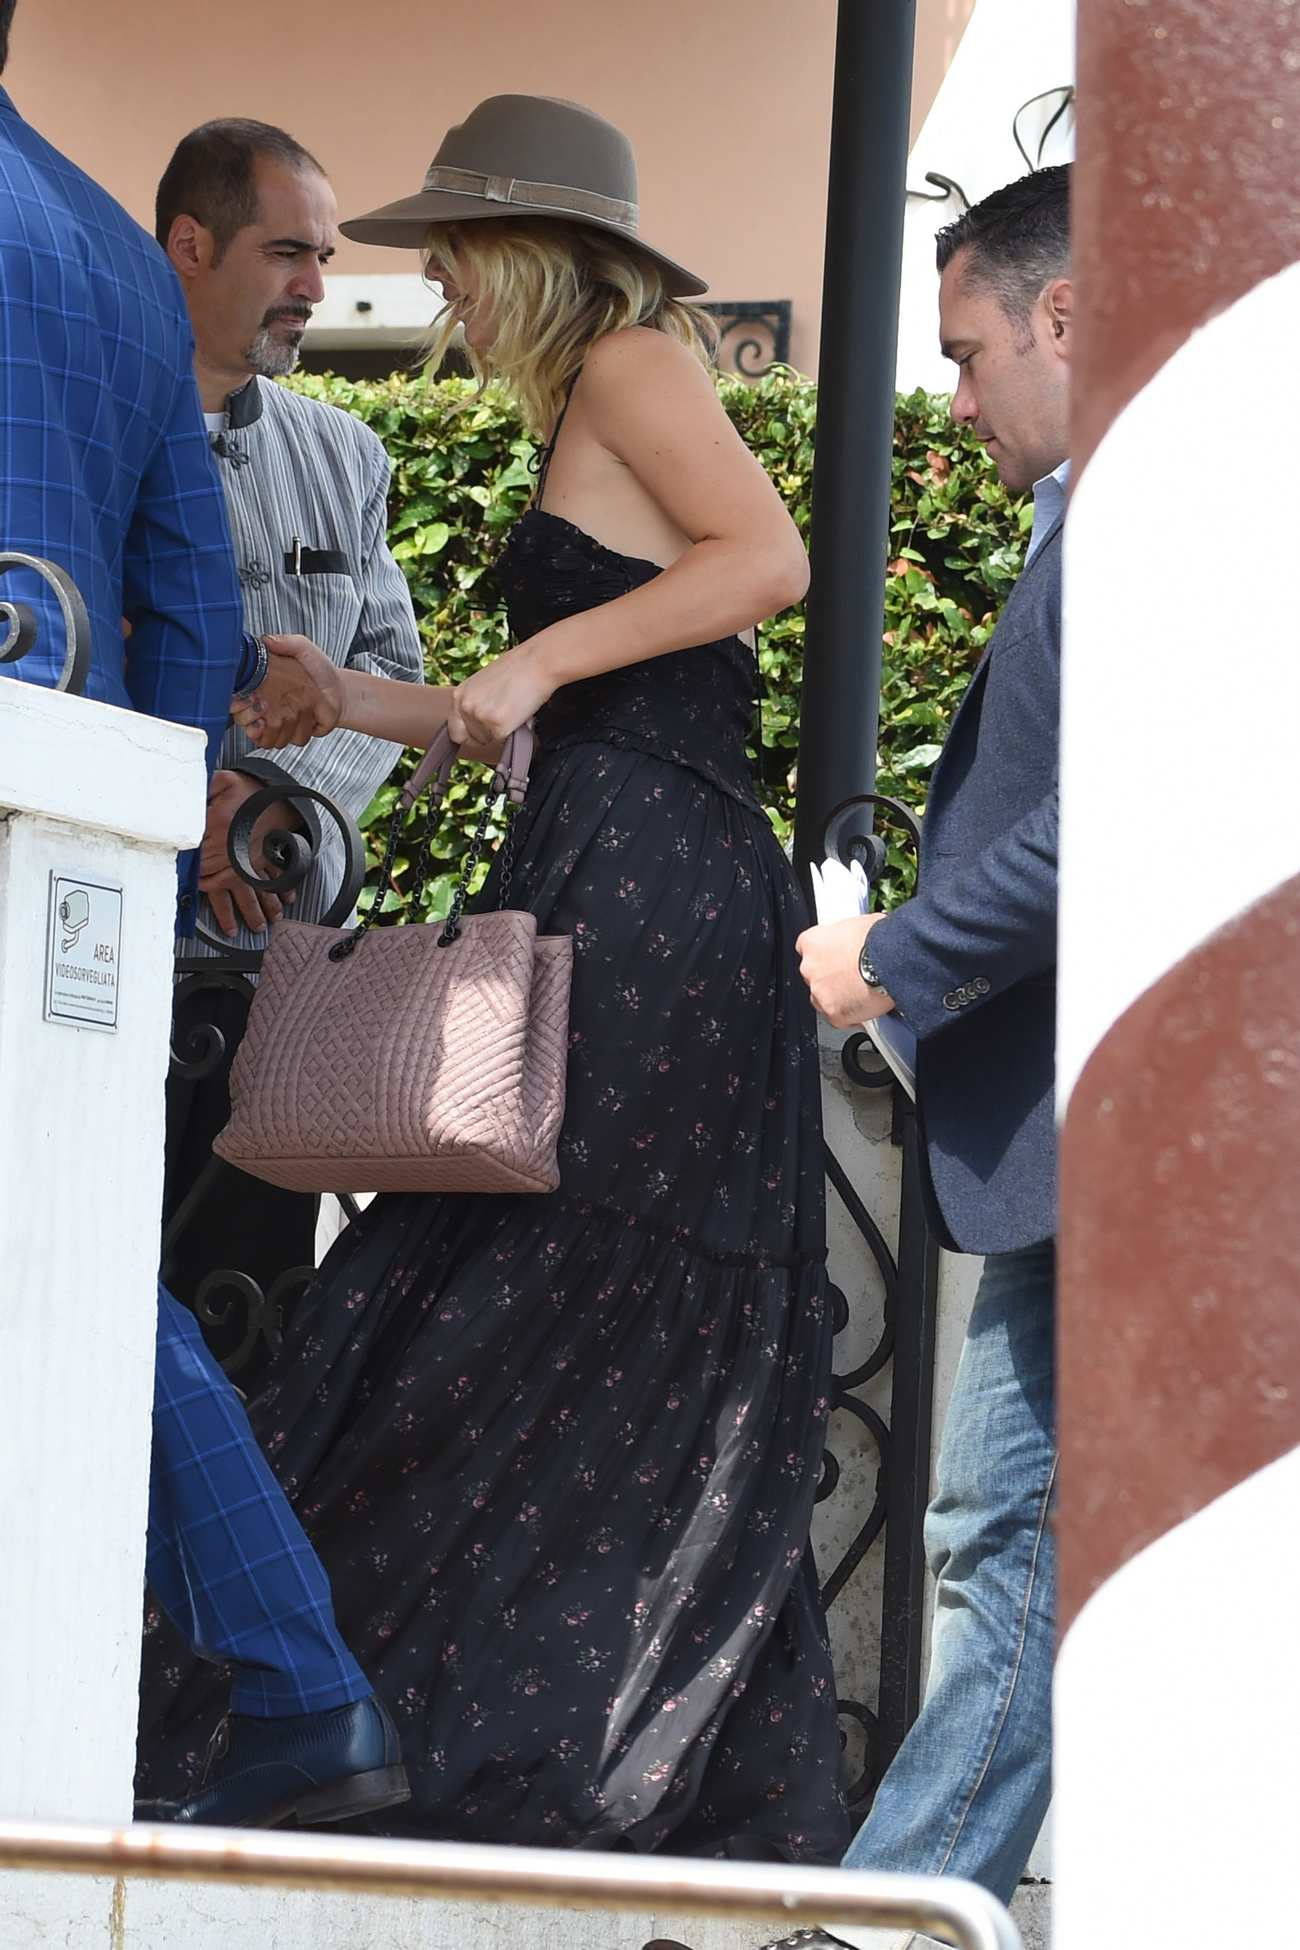 http://jenniferlawrencedaily.com/gallery/albums/userpics/10001/Arrives_at_Venice_Airport_for_the_74th_Venice_Festival_in_Italy_-_September_2-10.jpg